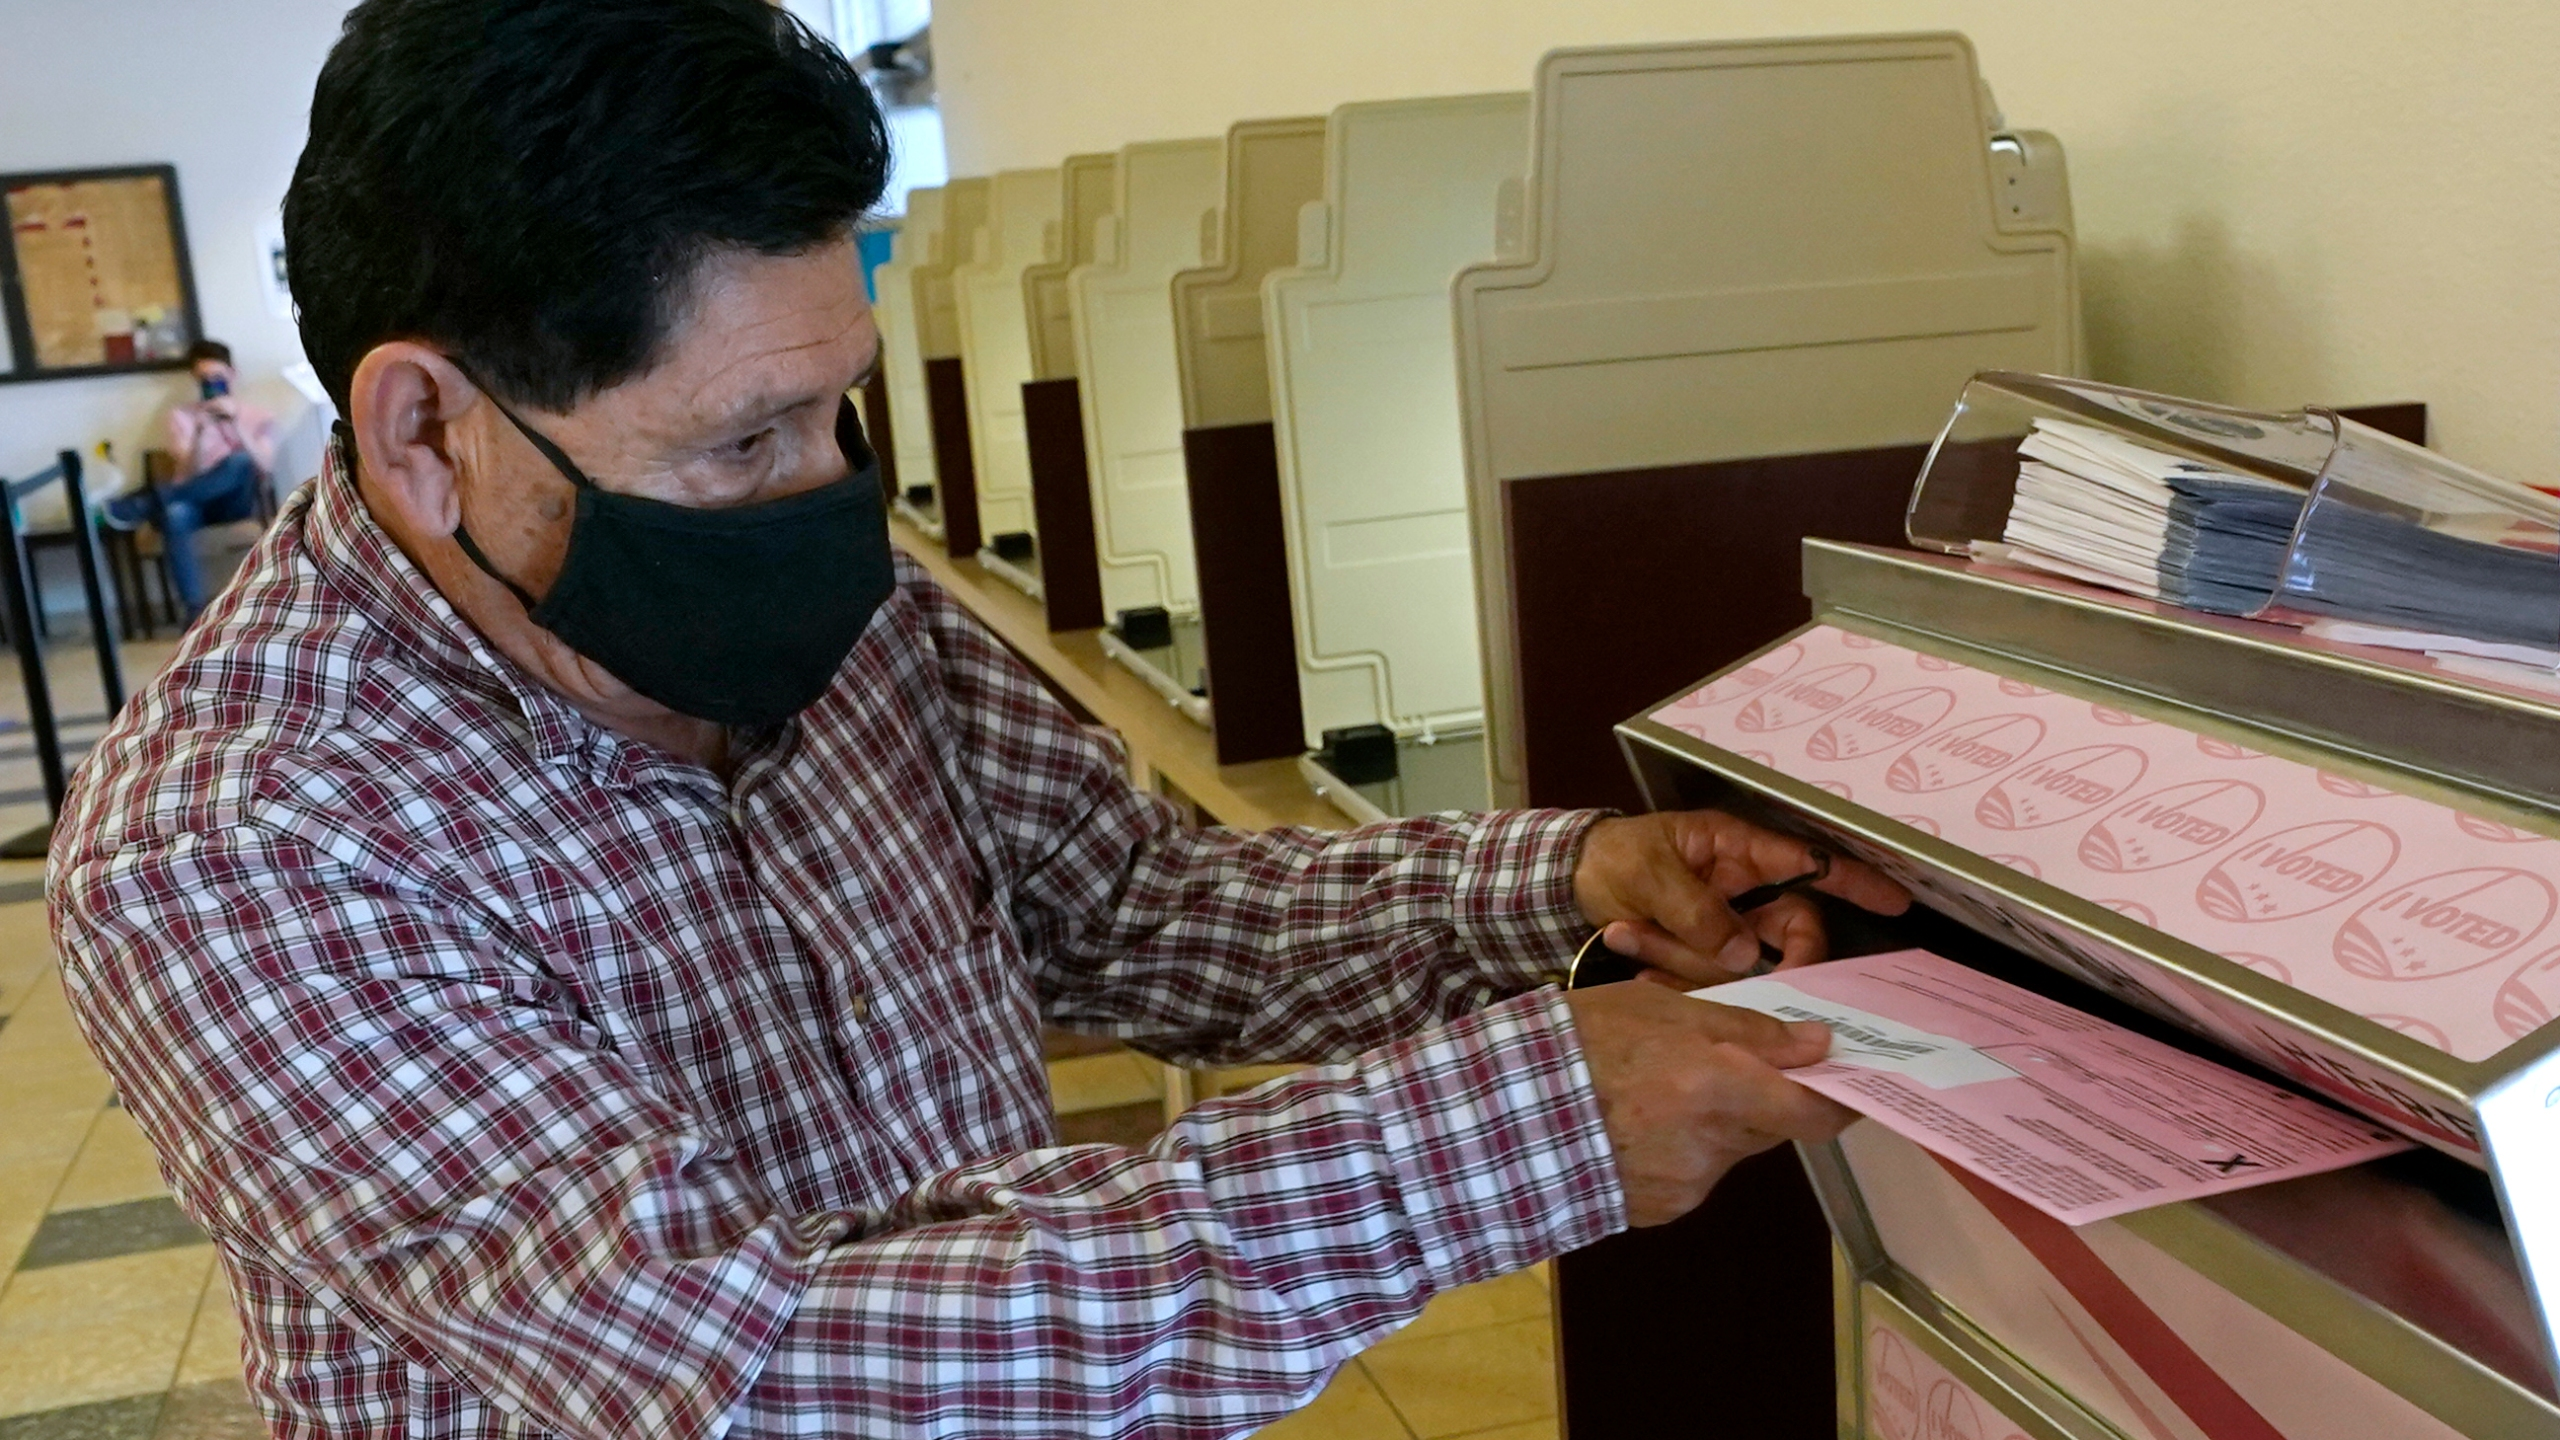 In this Aug. 30, 2021 file photo, Francisco Torres casts his ballot at the Sacramento County Registrar of Voters office in Sacramento, Calif. (AP Photo/Rich Pedroncelli, File)